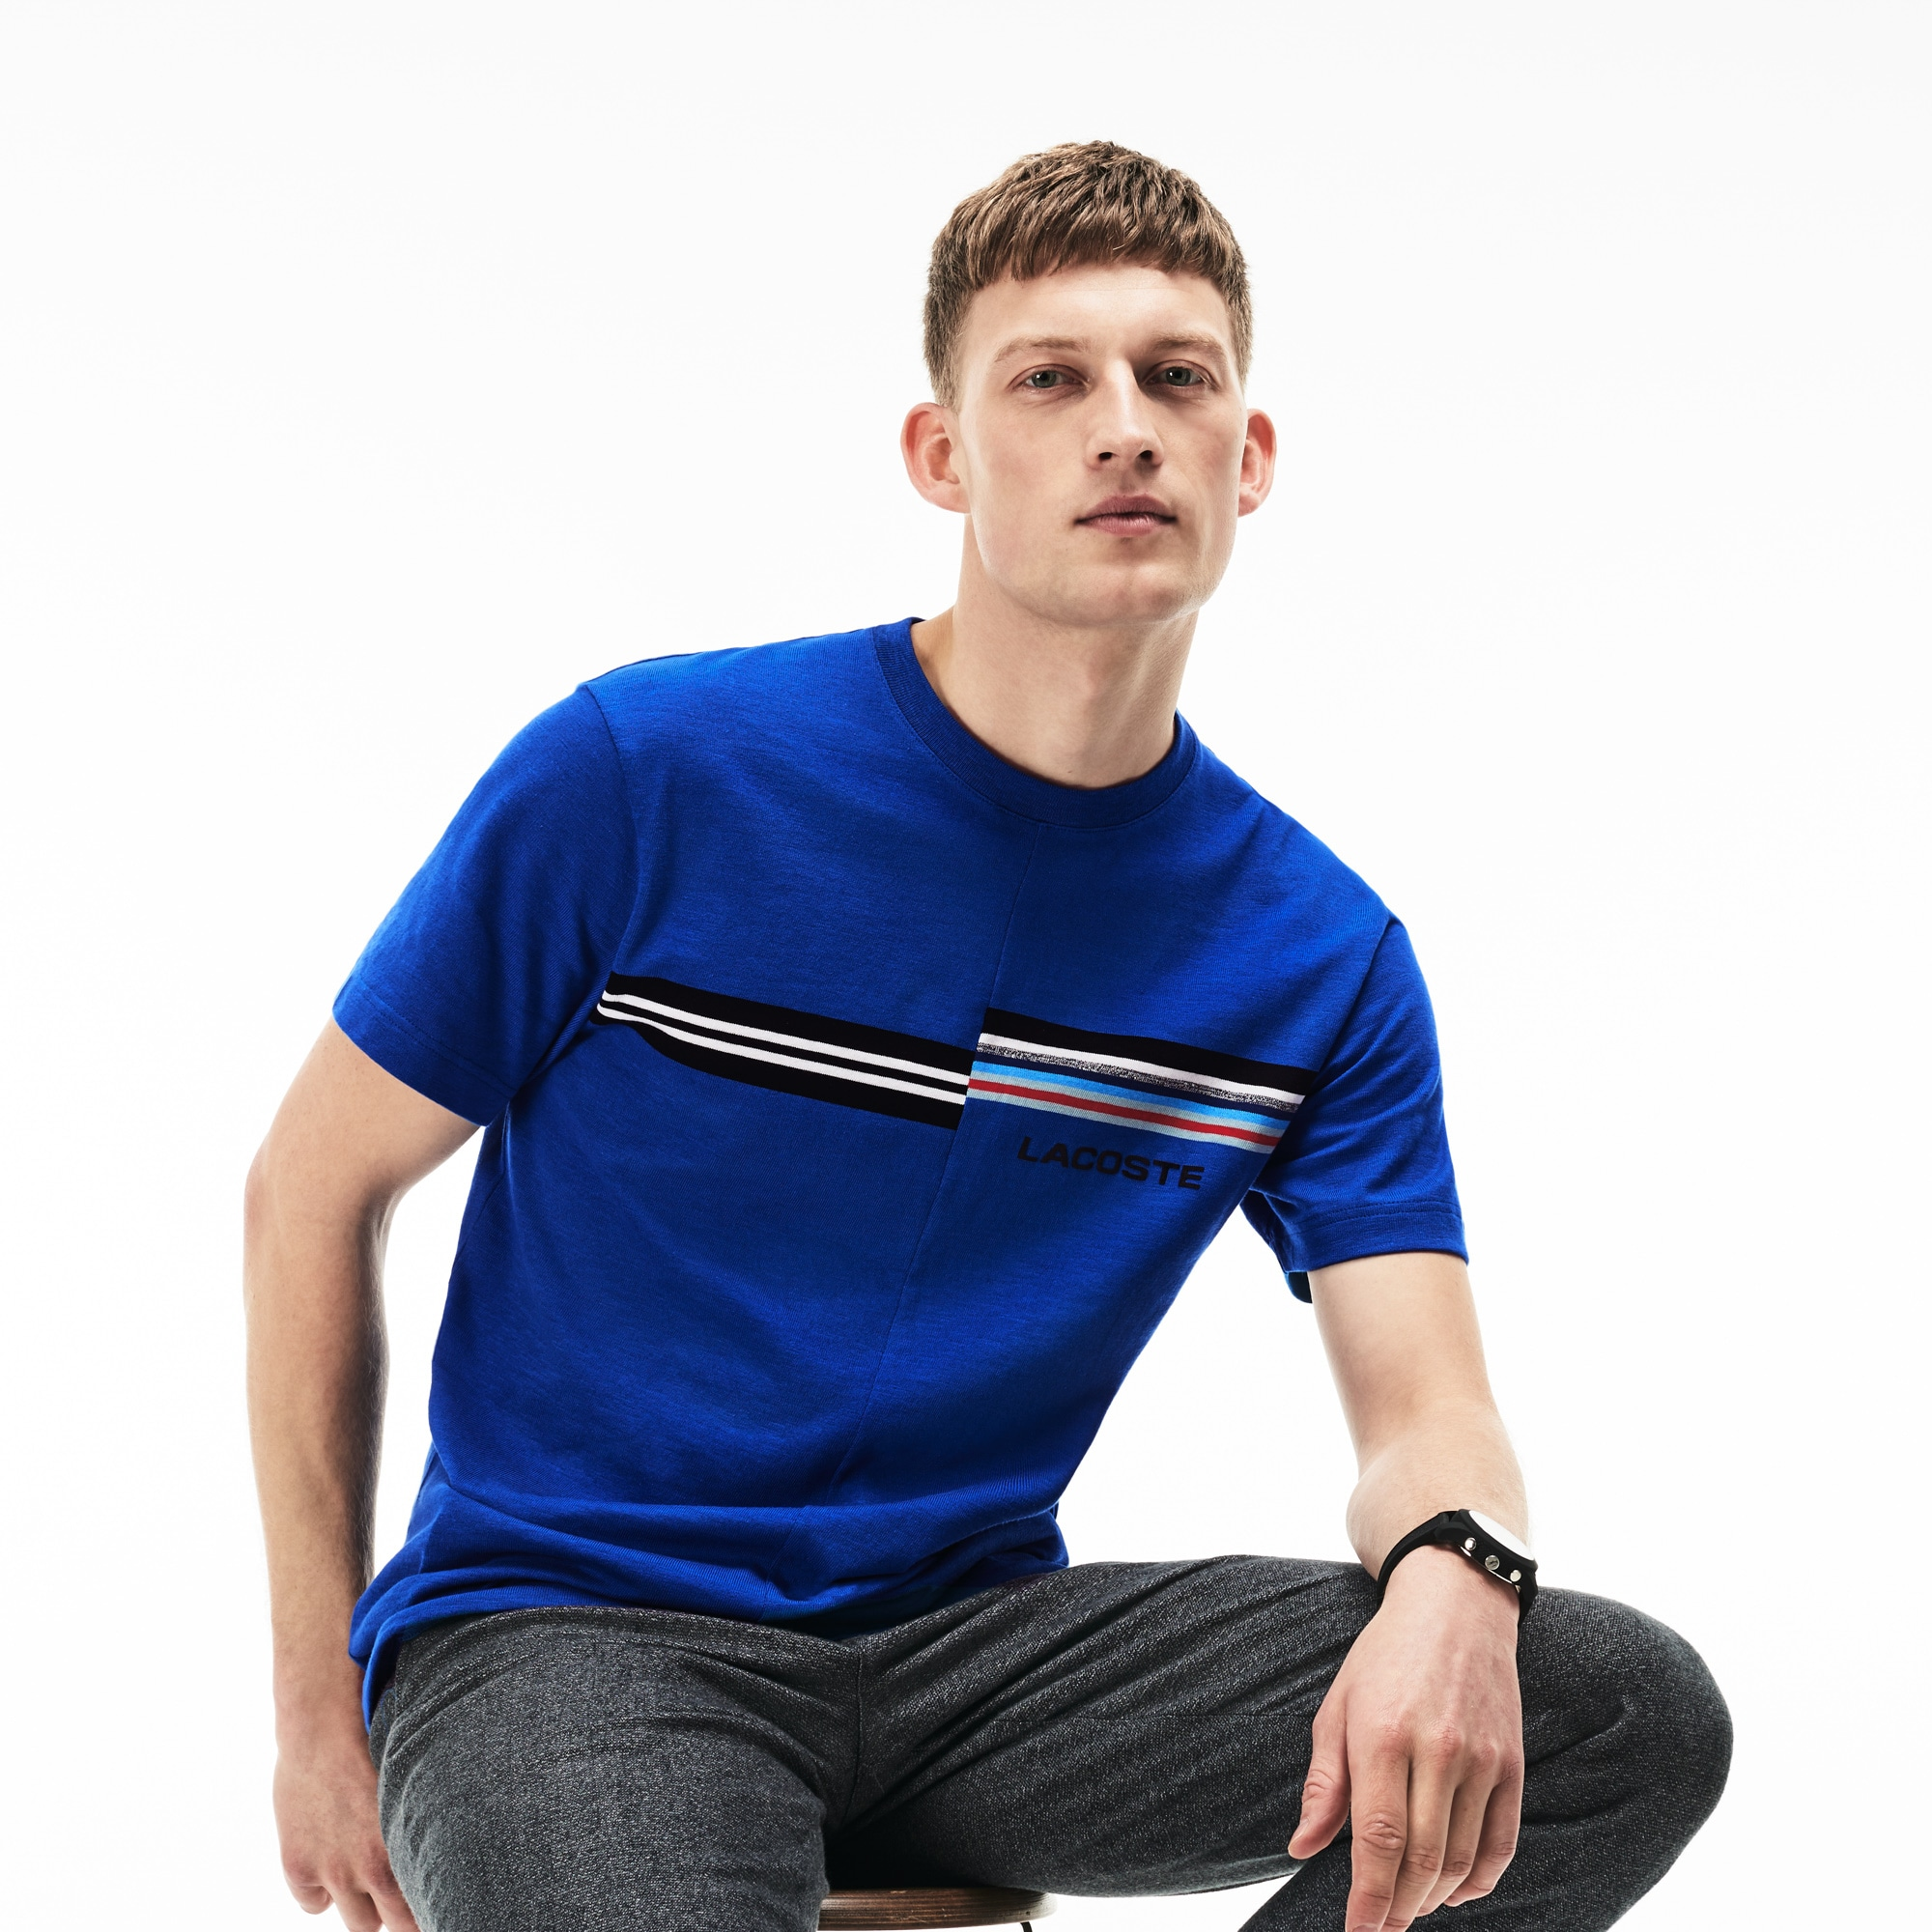 Men's 3D Lacoste Branding and Print Jersey Crew Neck T-shirt